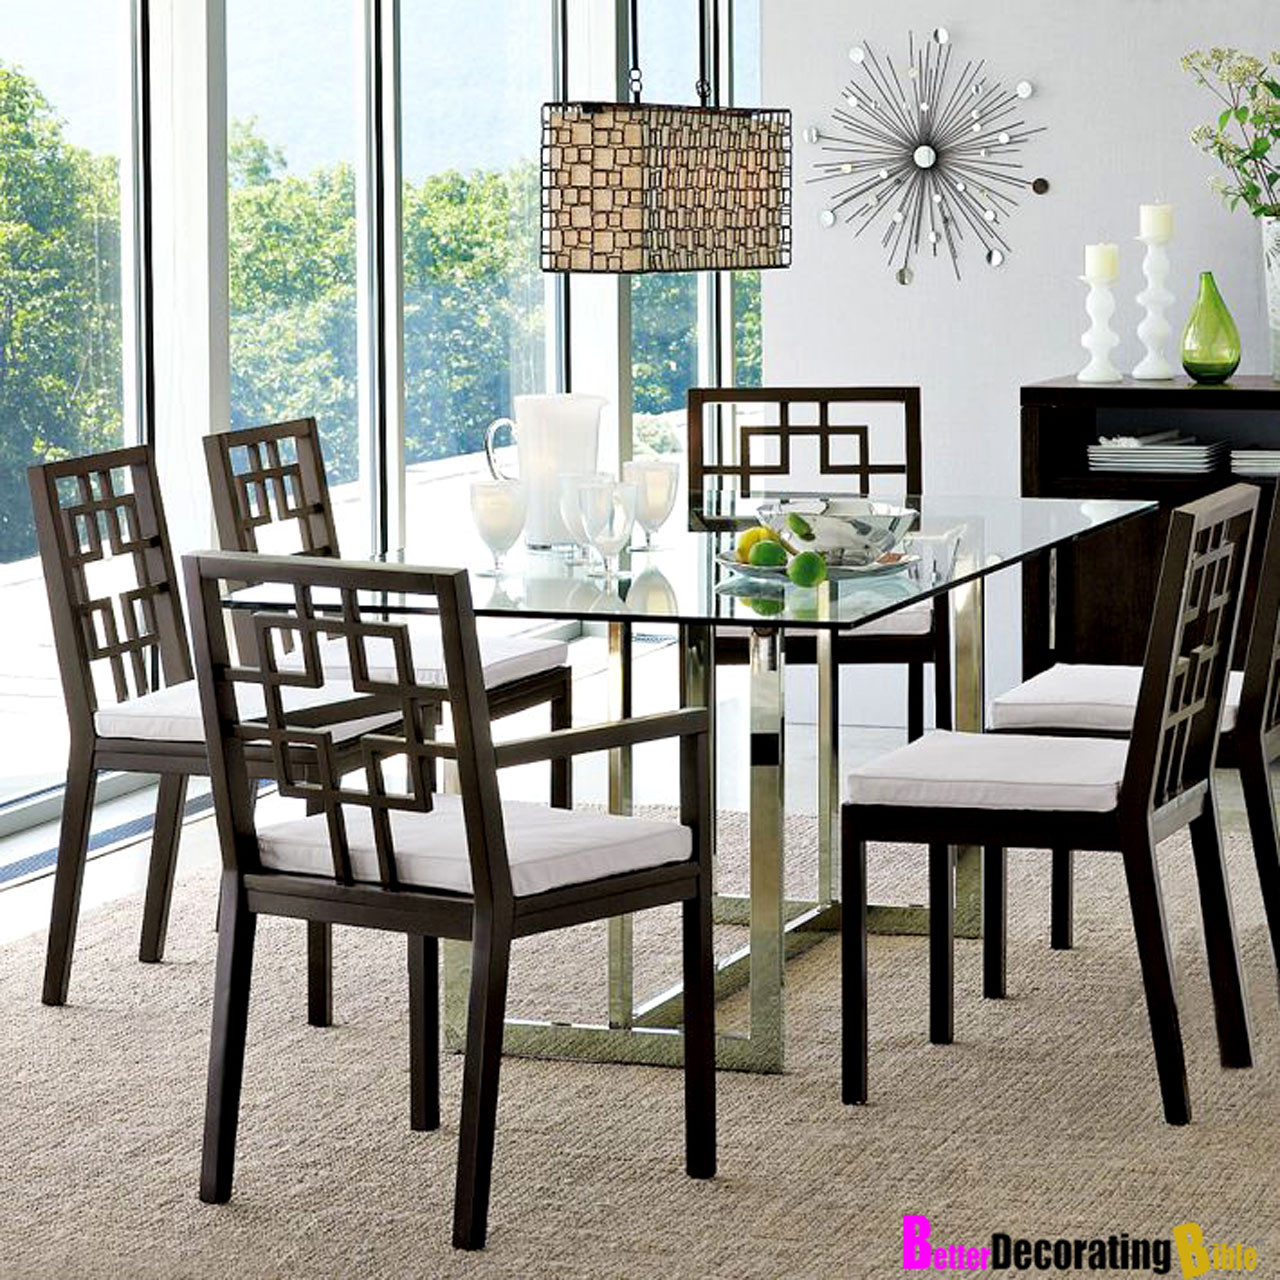 Best ideas about Glass Dining Room Tables . Save or Pin Modern Dining Room Furniture Design Amaza Design Now.